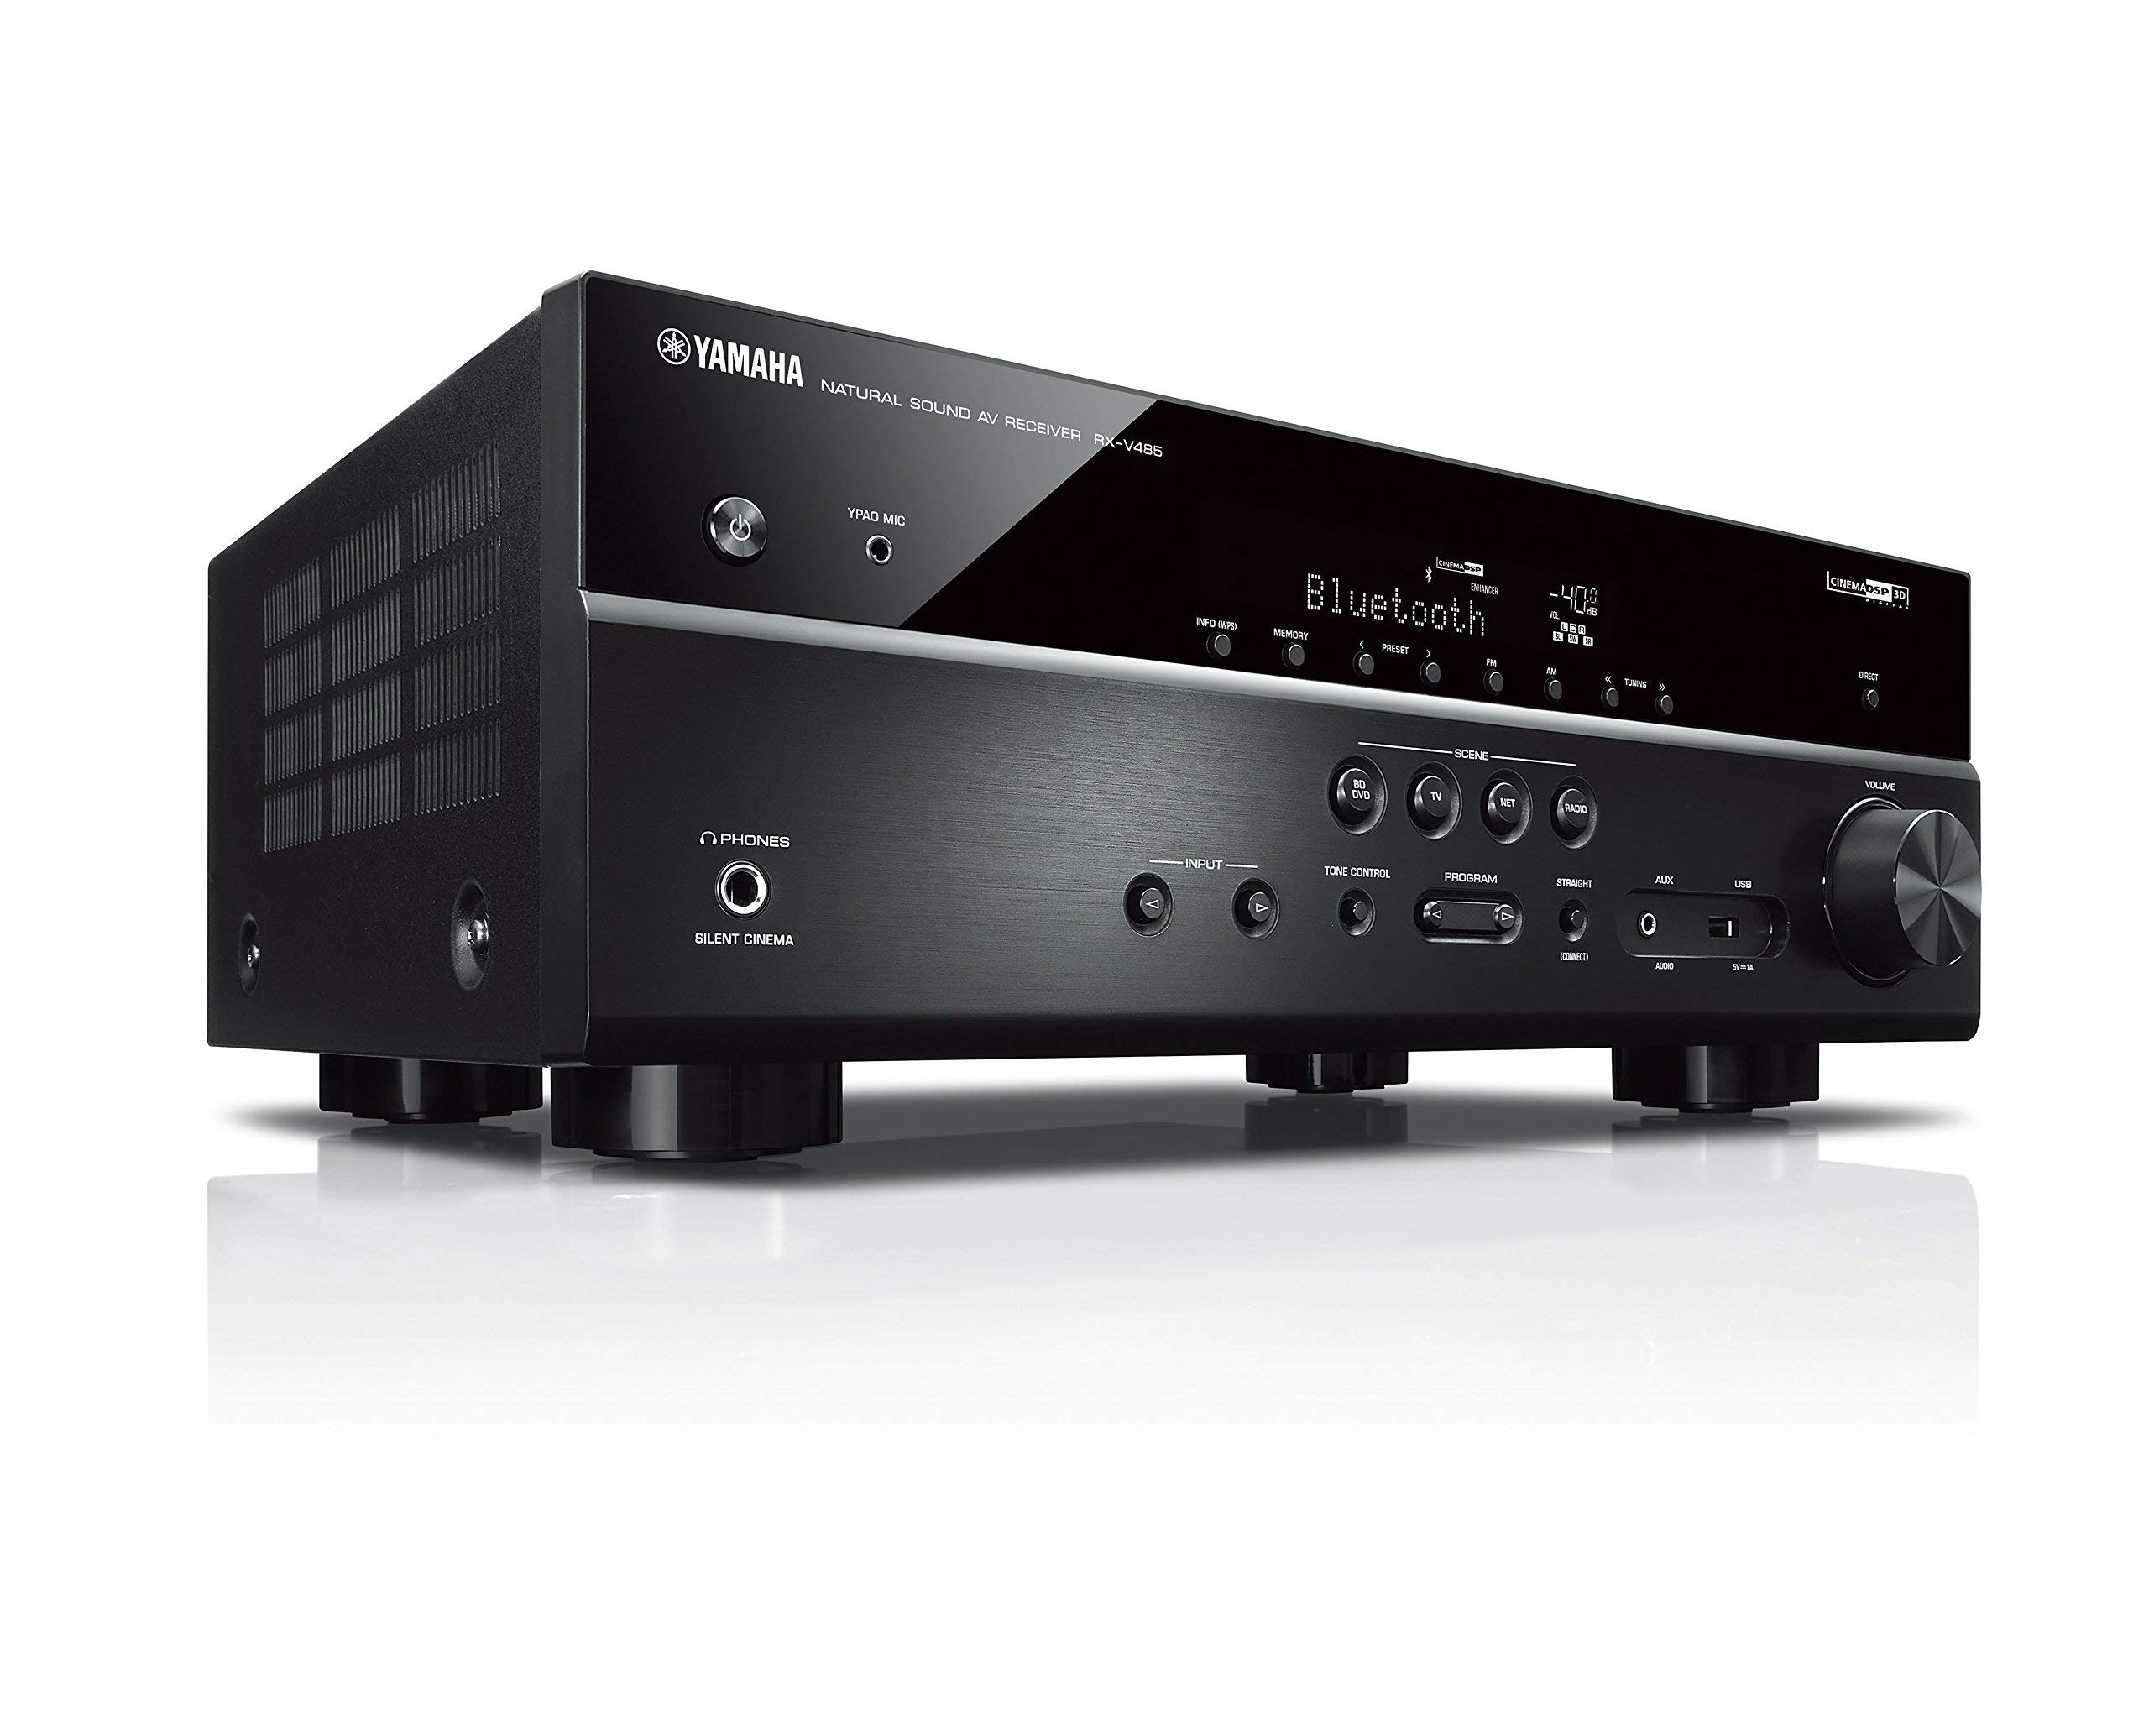 Yamaha RX-V485BL 5.1-Channel 4K Ultra HD AV Receiver with MusicCast - Black (Renewed) by Yamaha (Image #3)